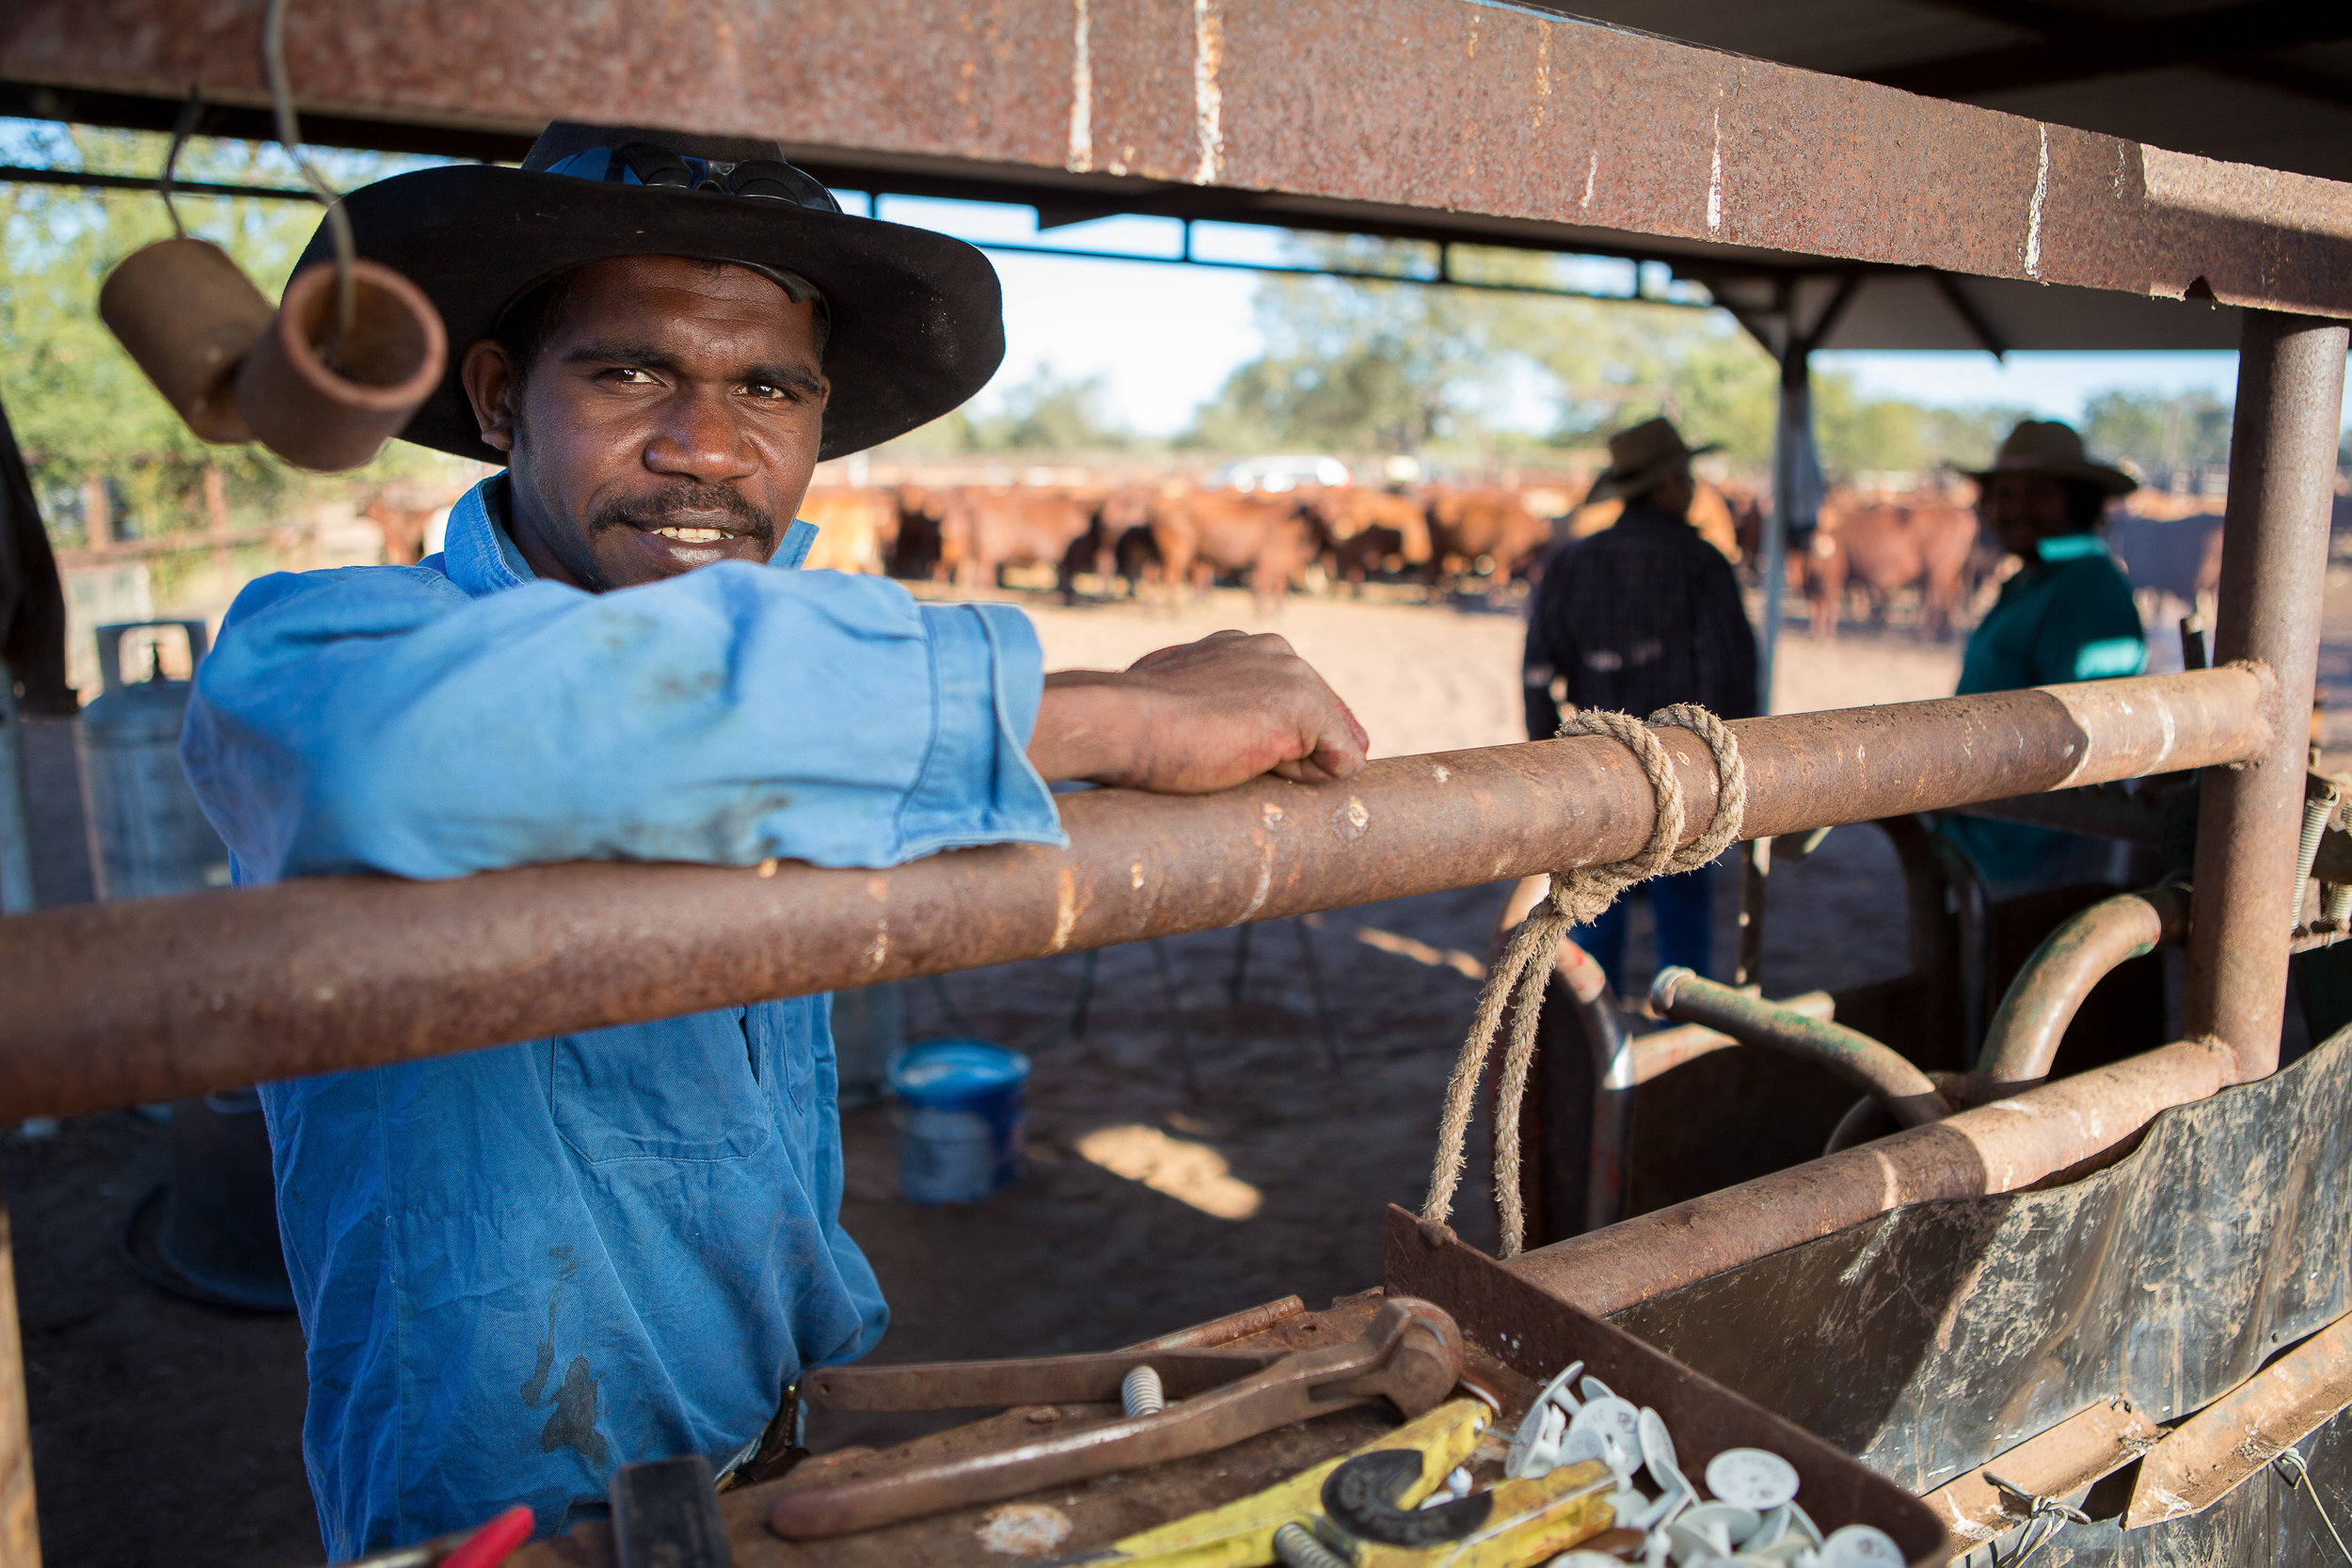 Indigenous Australian farm worker portrait on a cattle ranch leaning against the fence